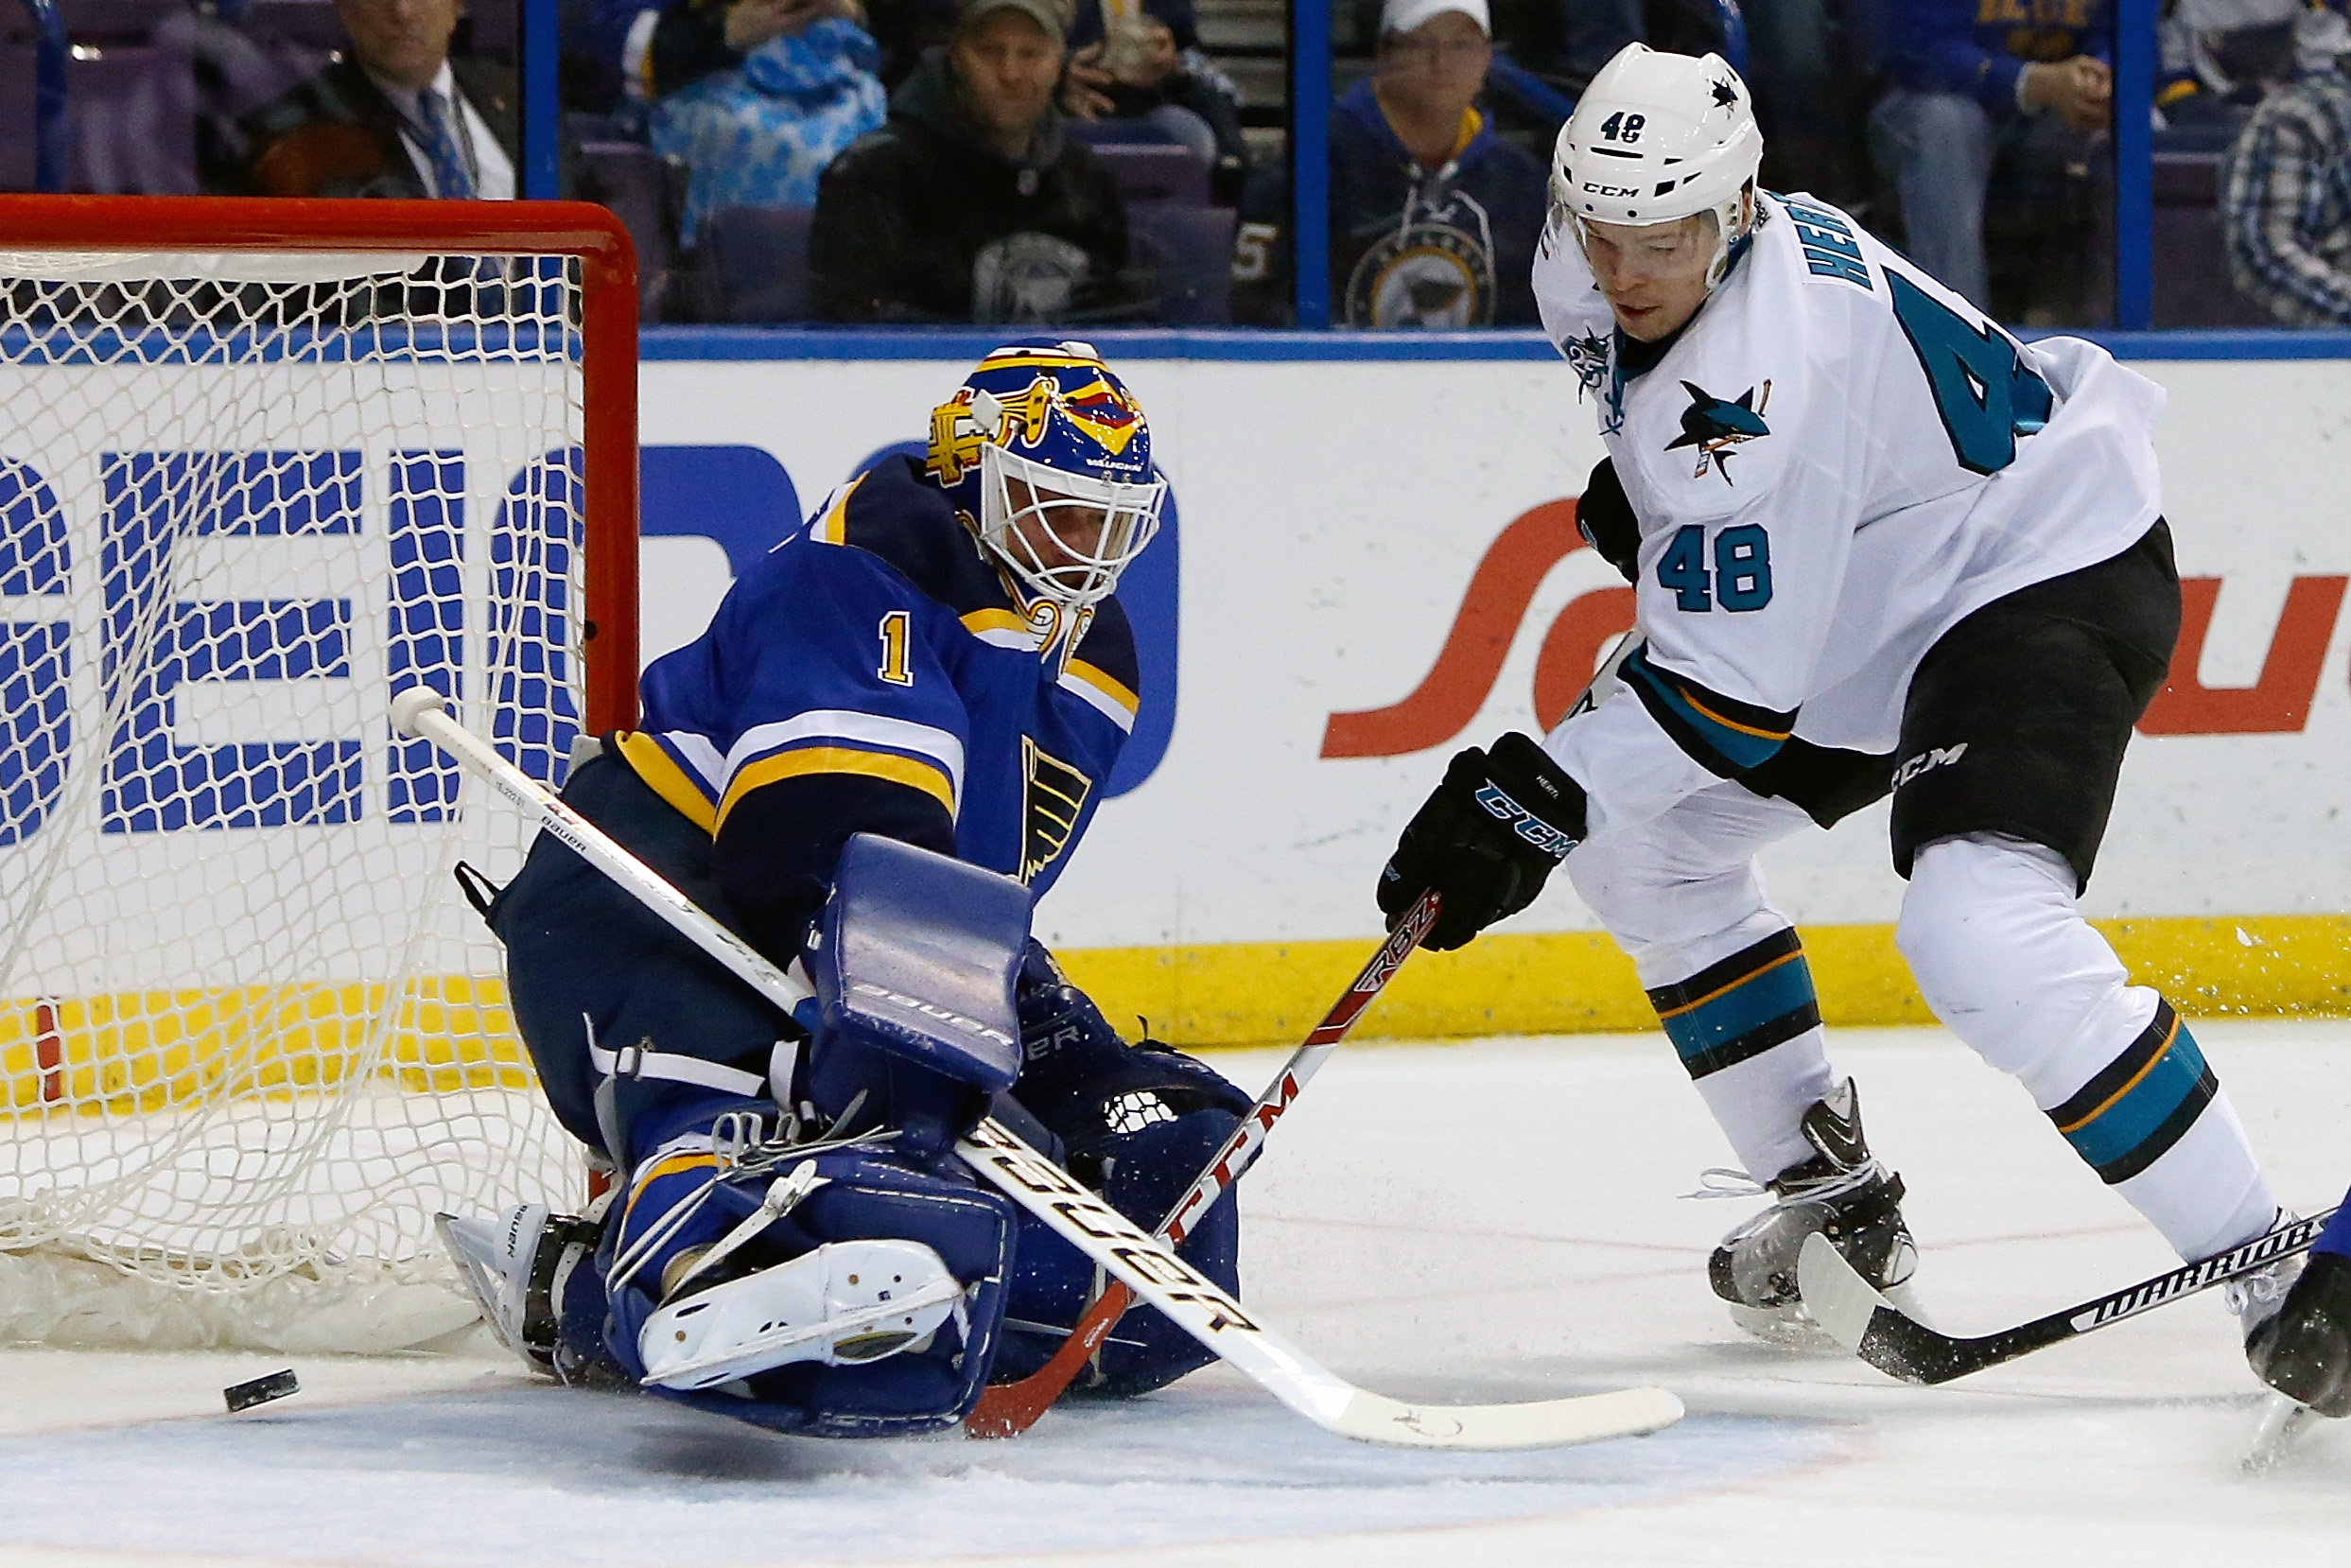 San Jose Sharks' Tomas Hertl, right, of the Czech Republic, gets the puck past St. Louis Blues goalie Brian Elliott  to score a goal during the first period of an NHL hockey game Monday Feb. 22, 2016, in St. Louis. (AP Photo/Scott Kane)